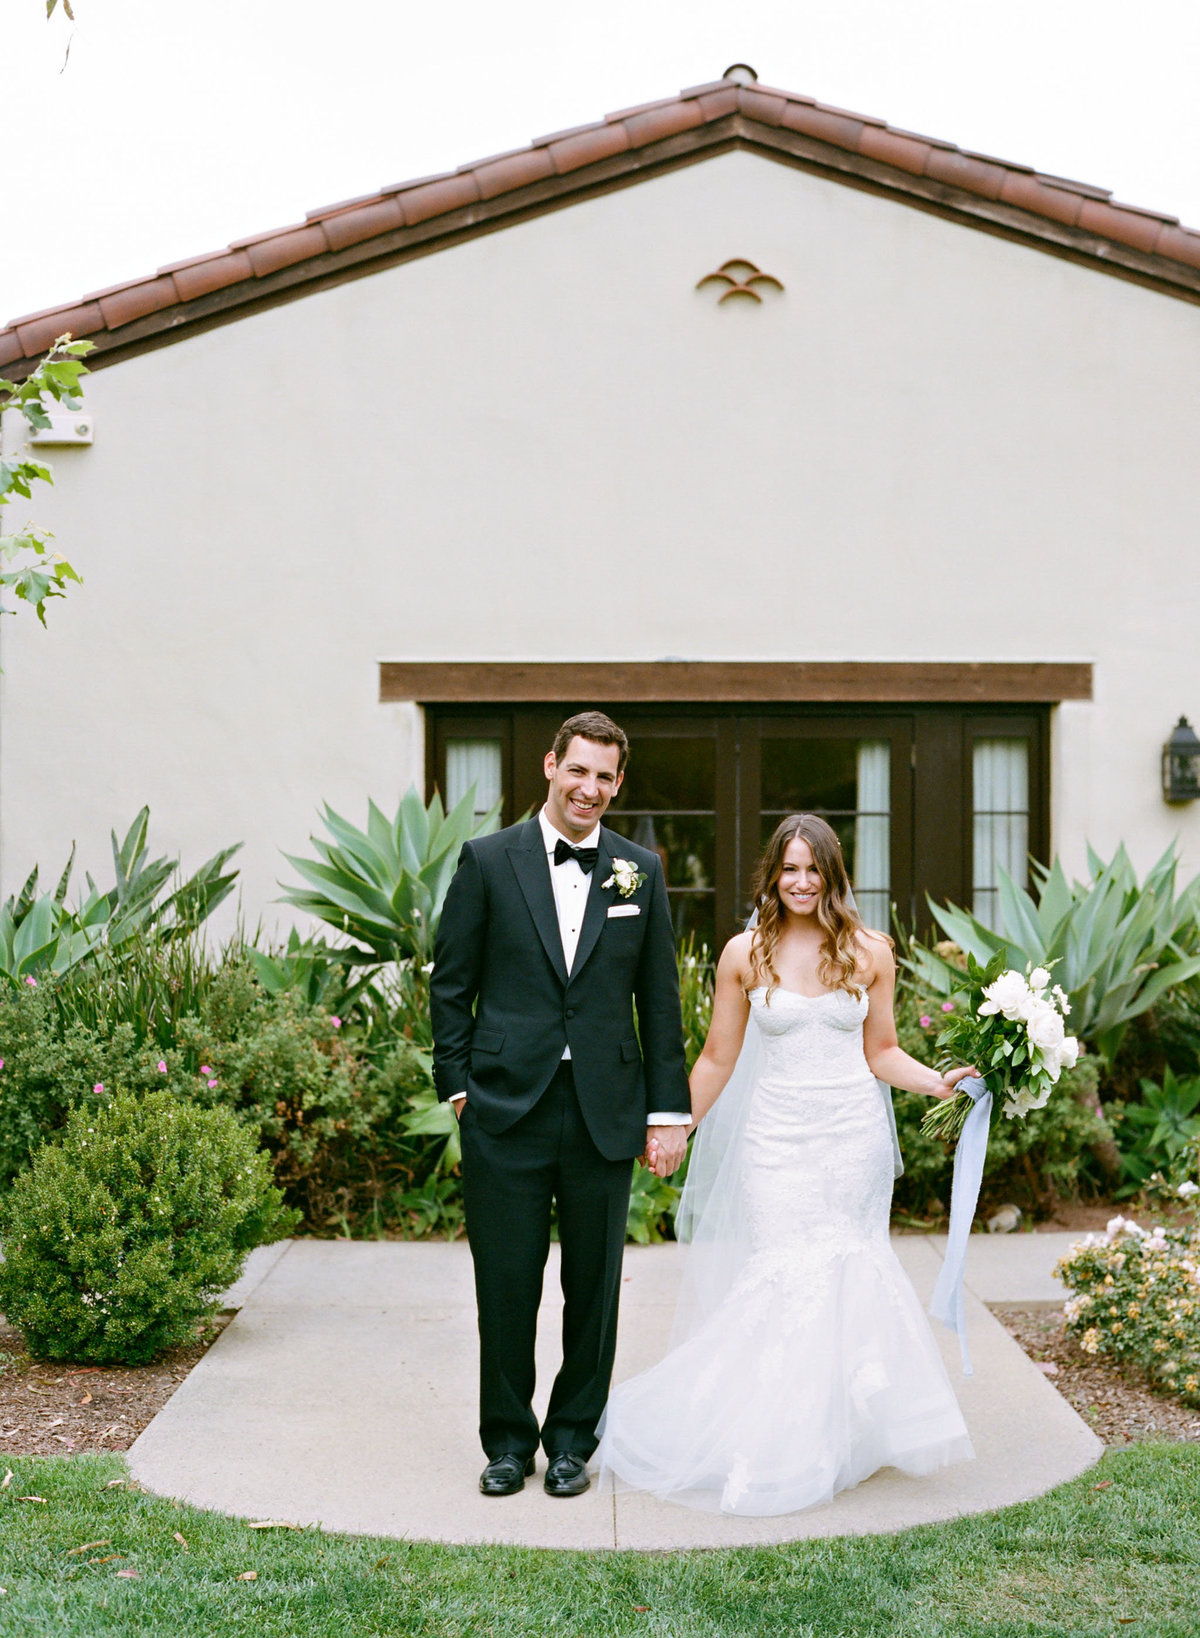 marisaholmes_san_diego_wedding_010